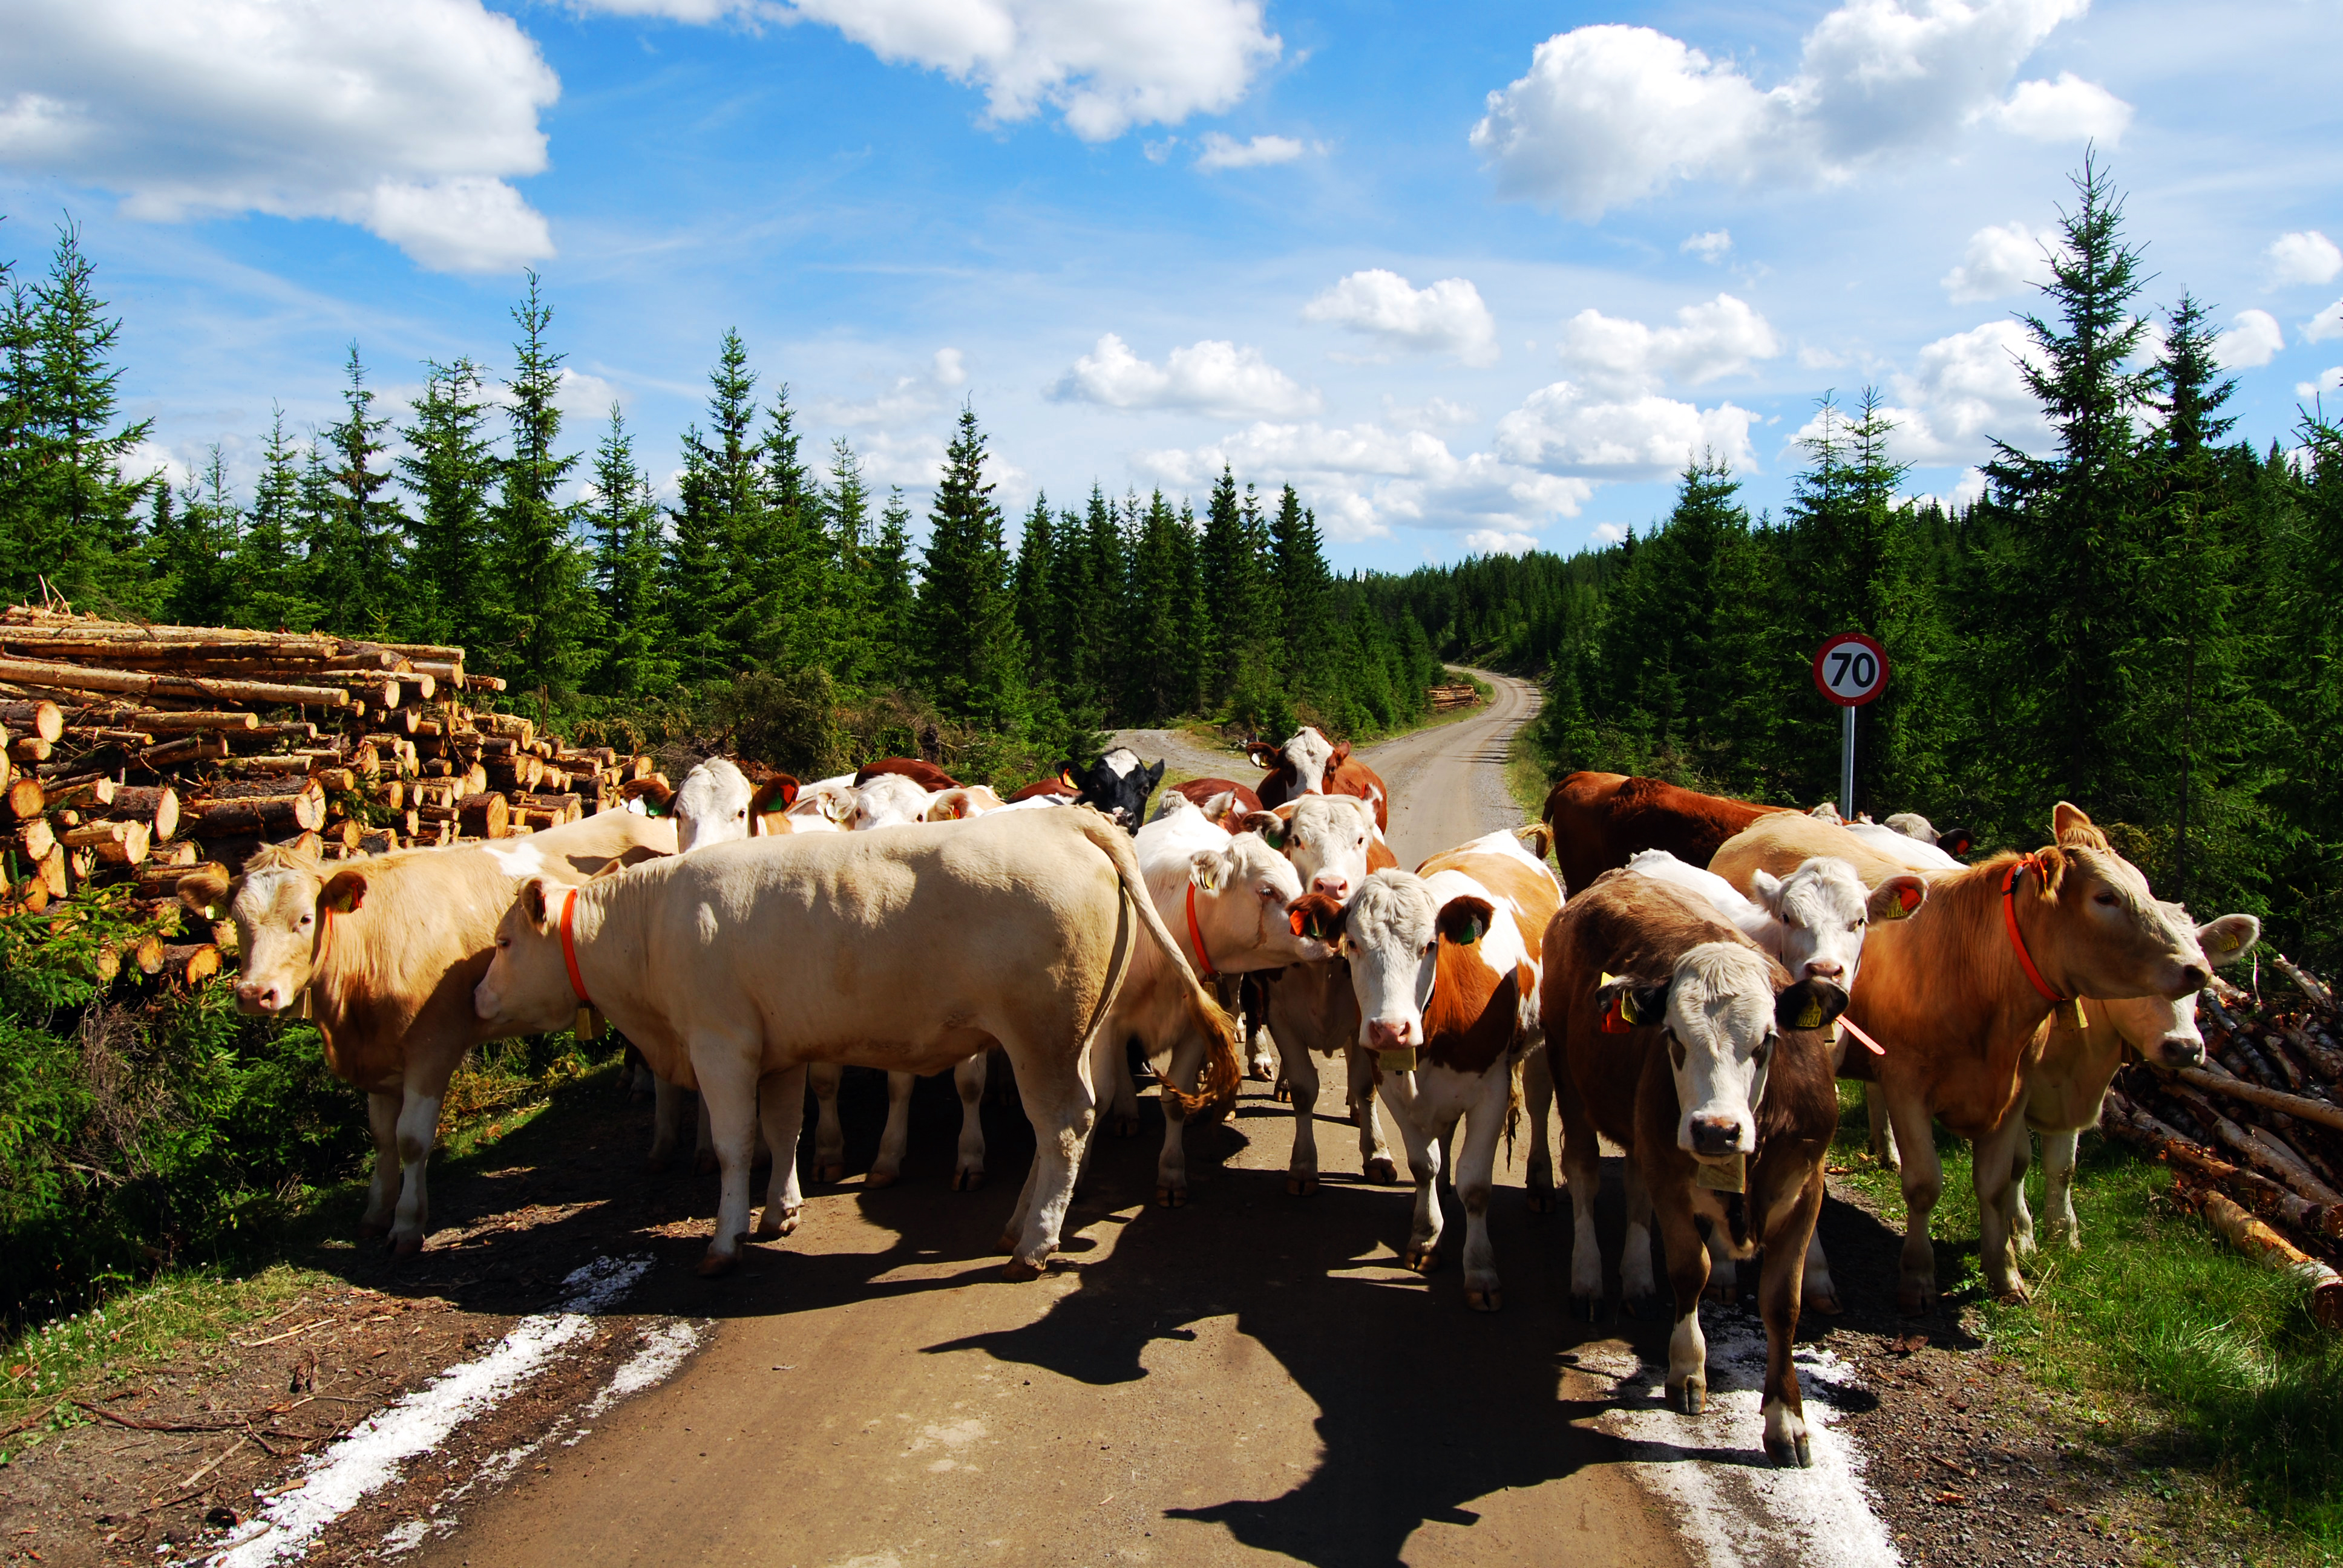 Cows on the road (By Torstein Frogner via Wikimedia CC-BY)